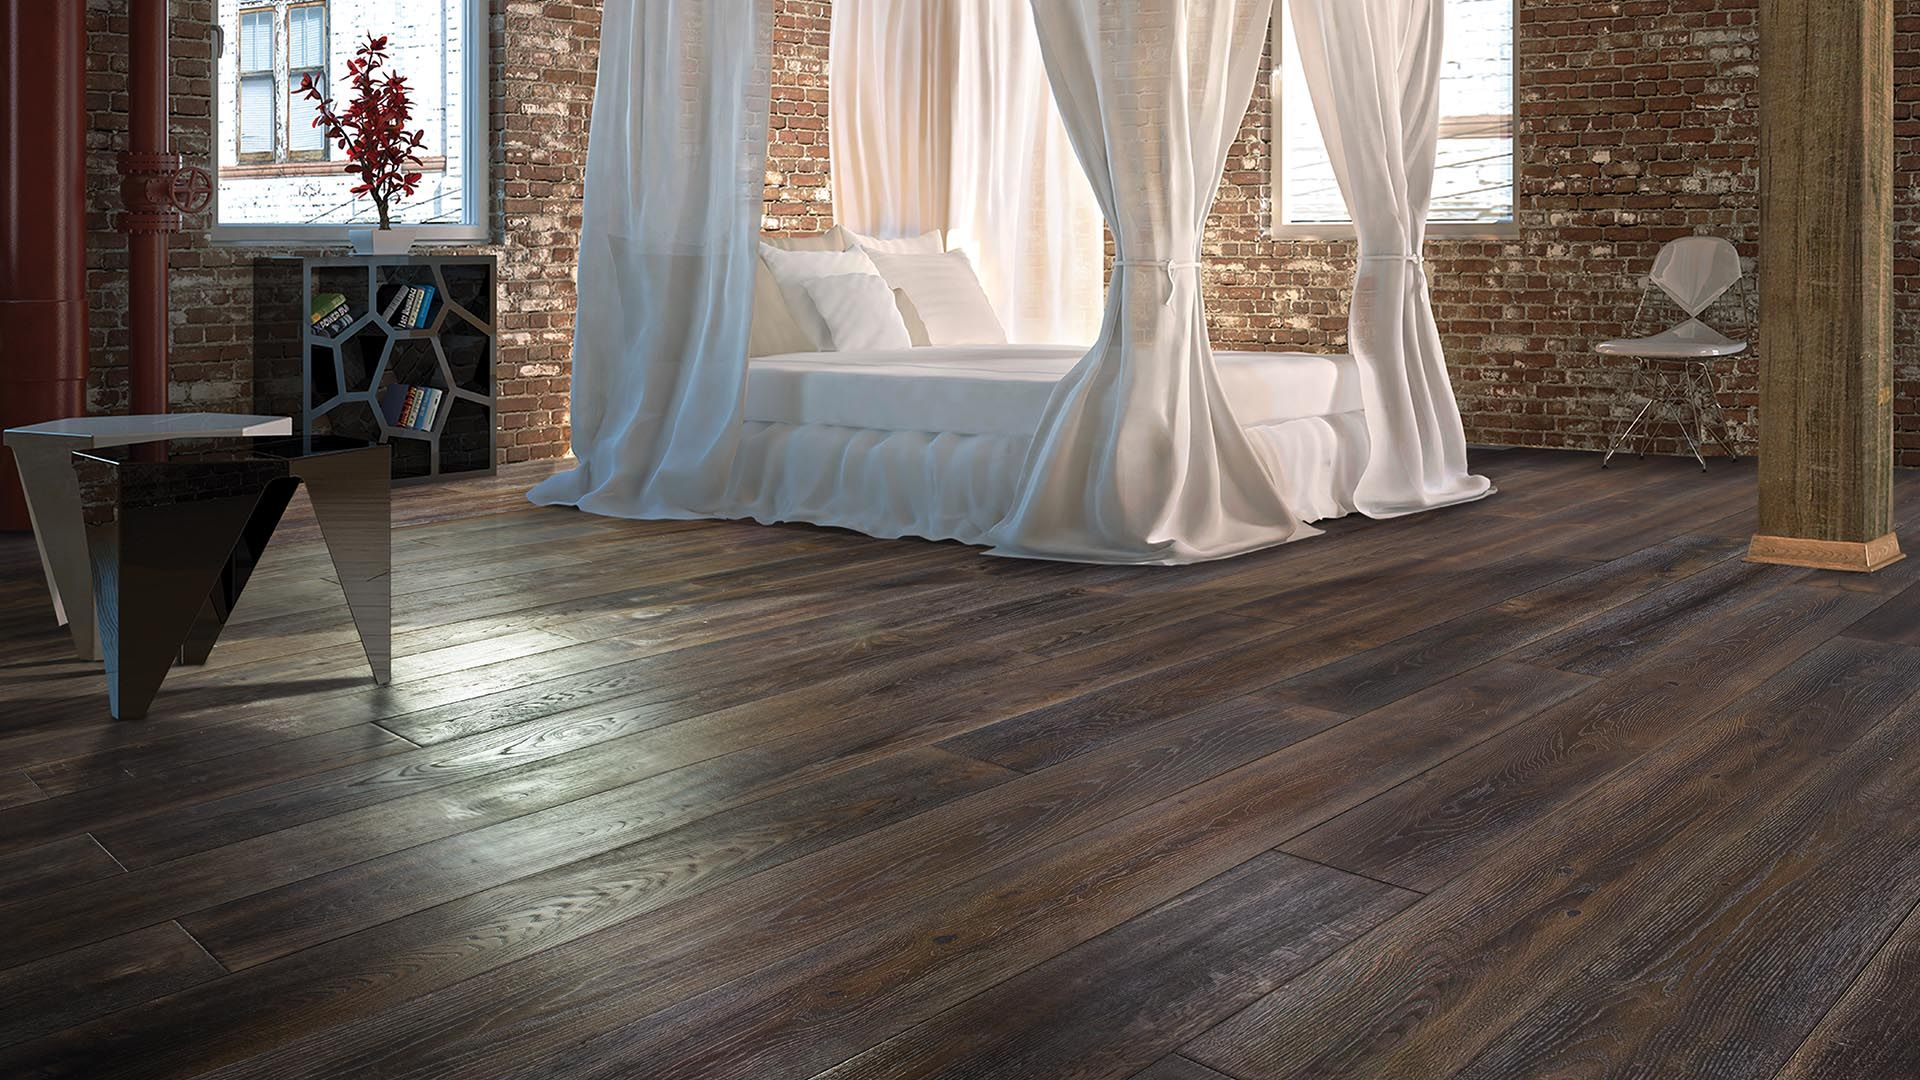 Baroques vintage hardwood flooring captures the essence and beauty of europes renaissance era with its antiquing and aged reclaimed european oak style